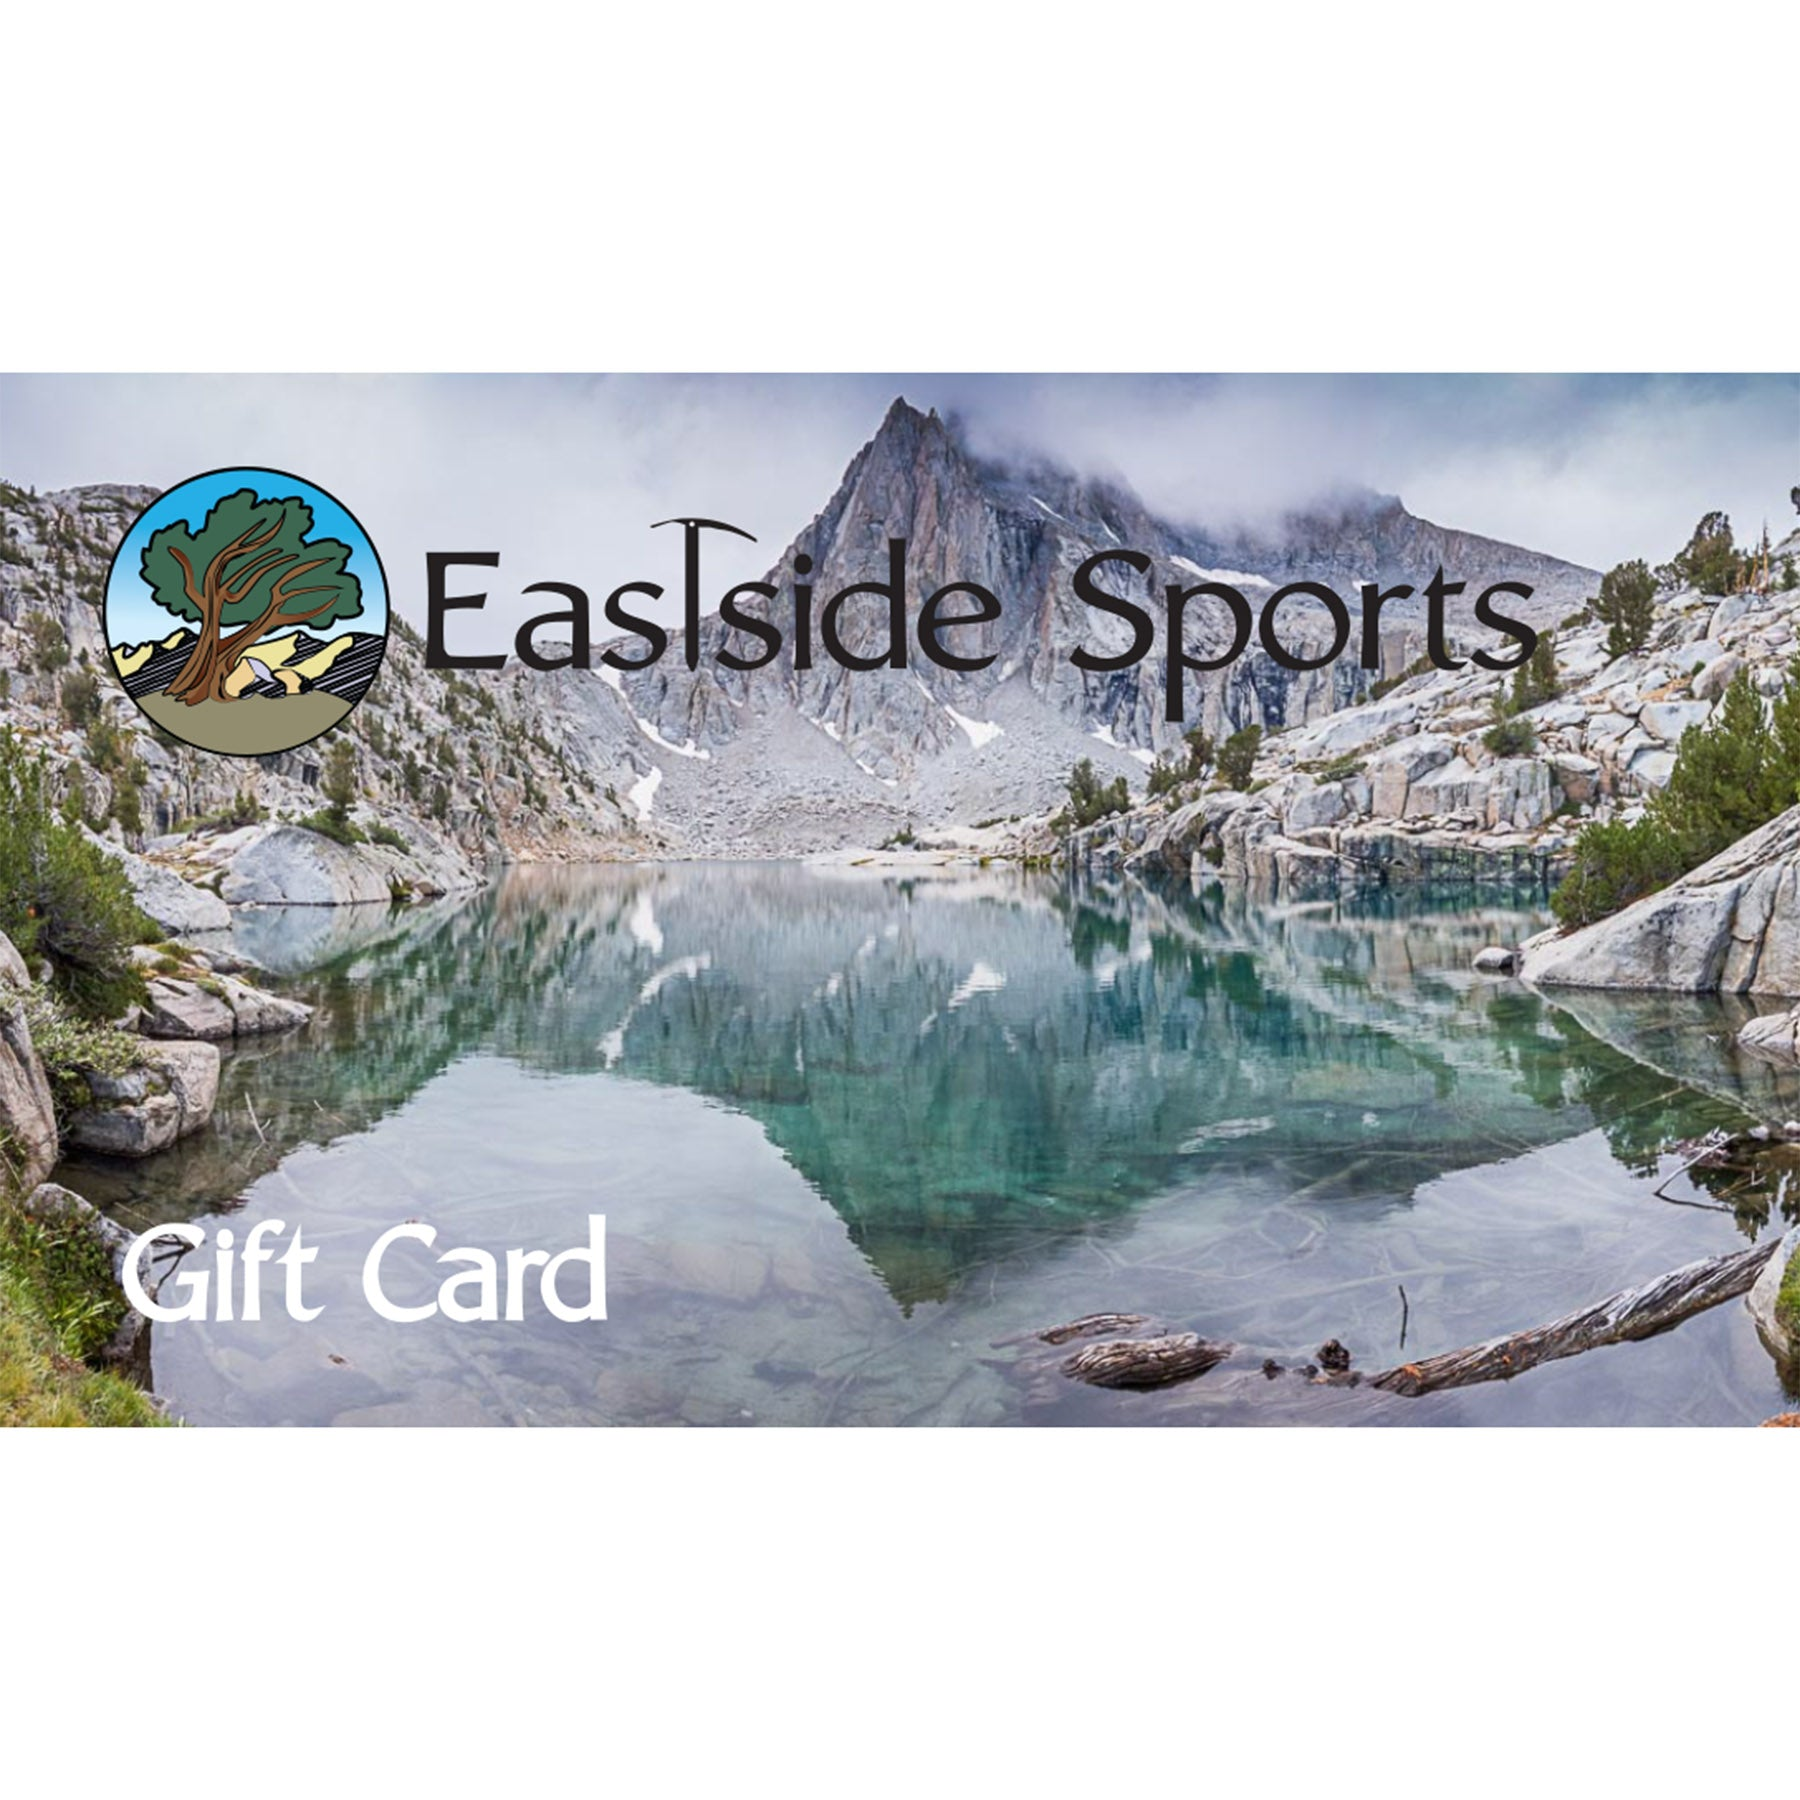 Eastside Sports Gift Card